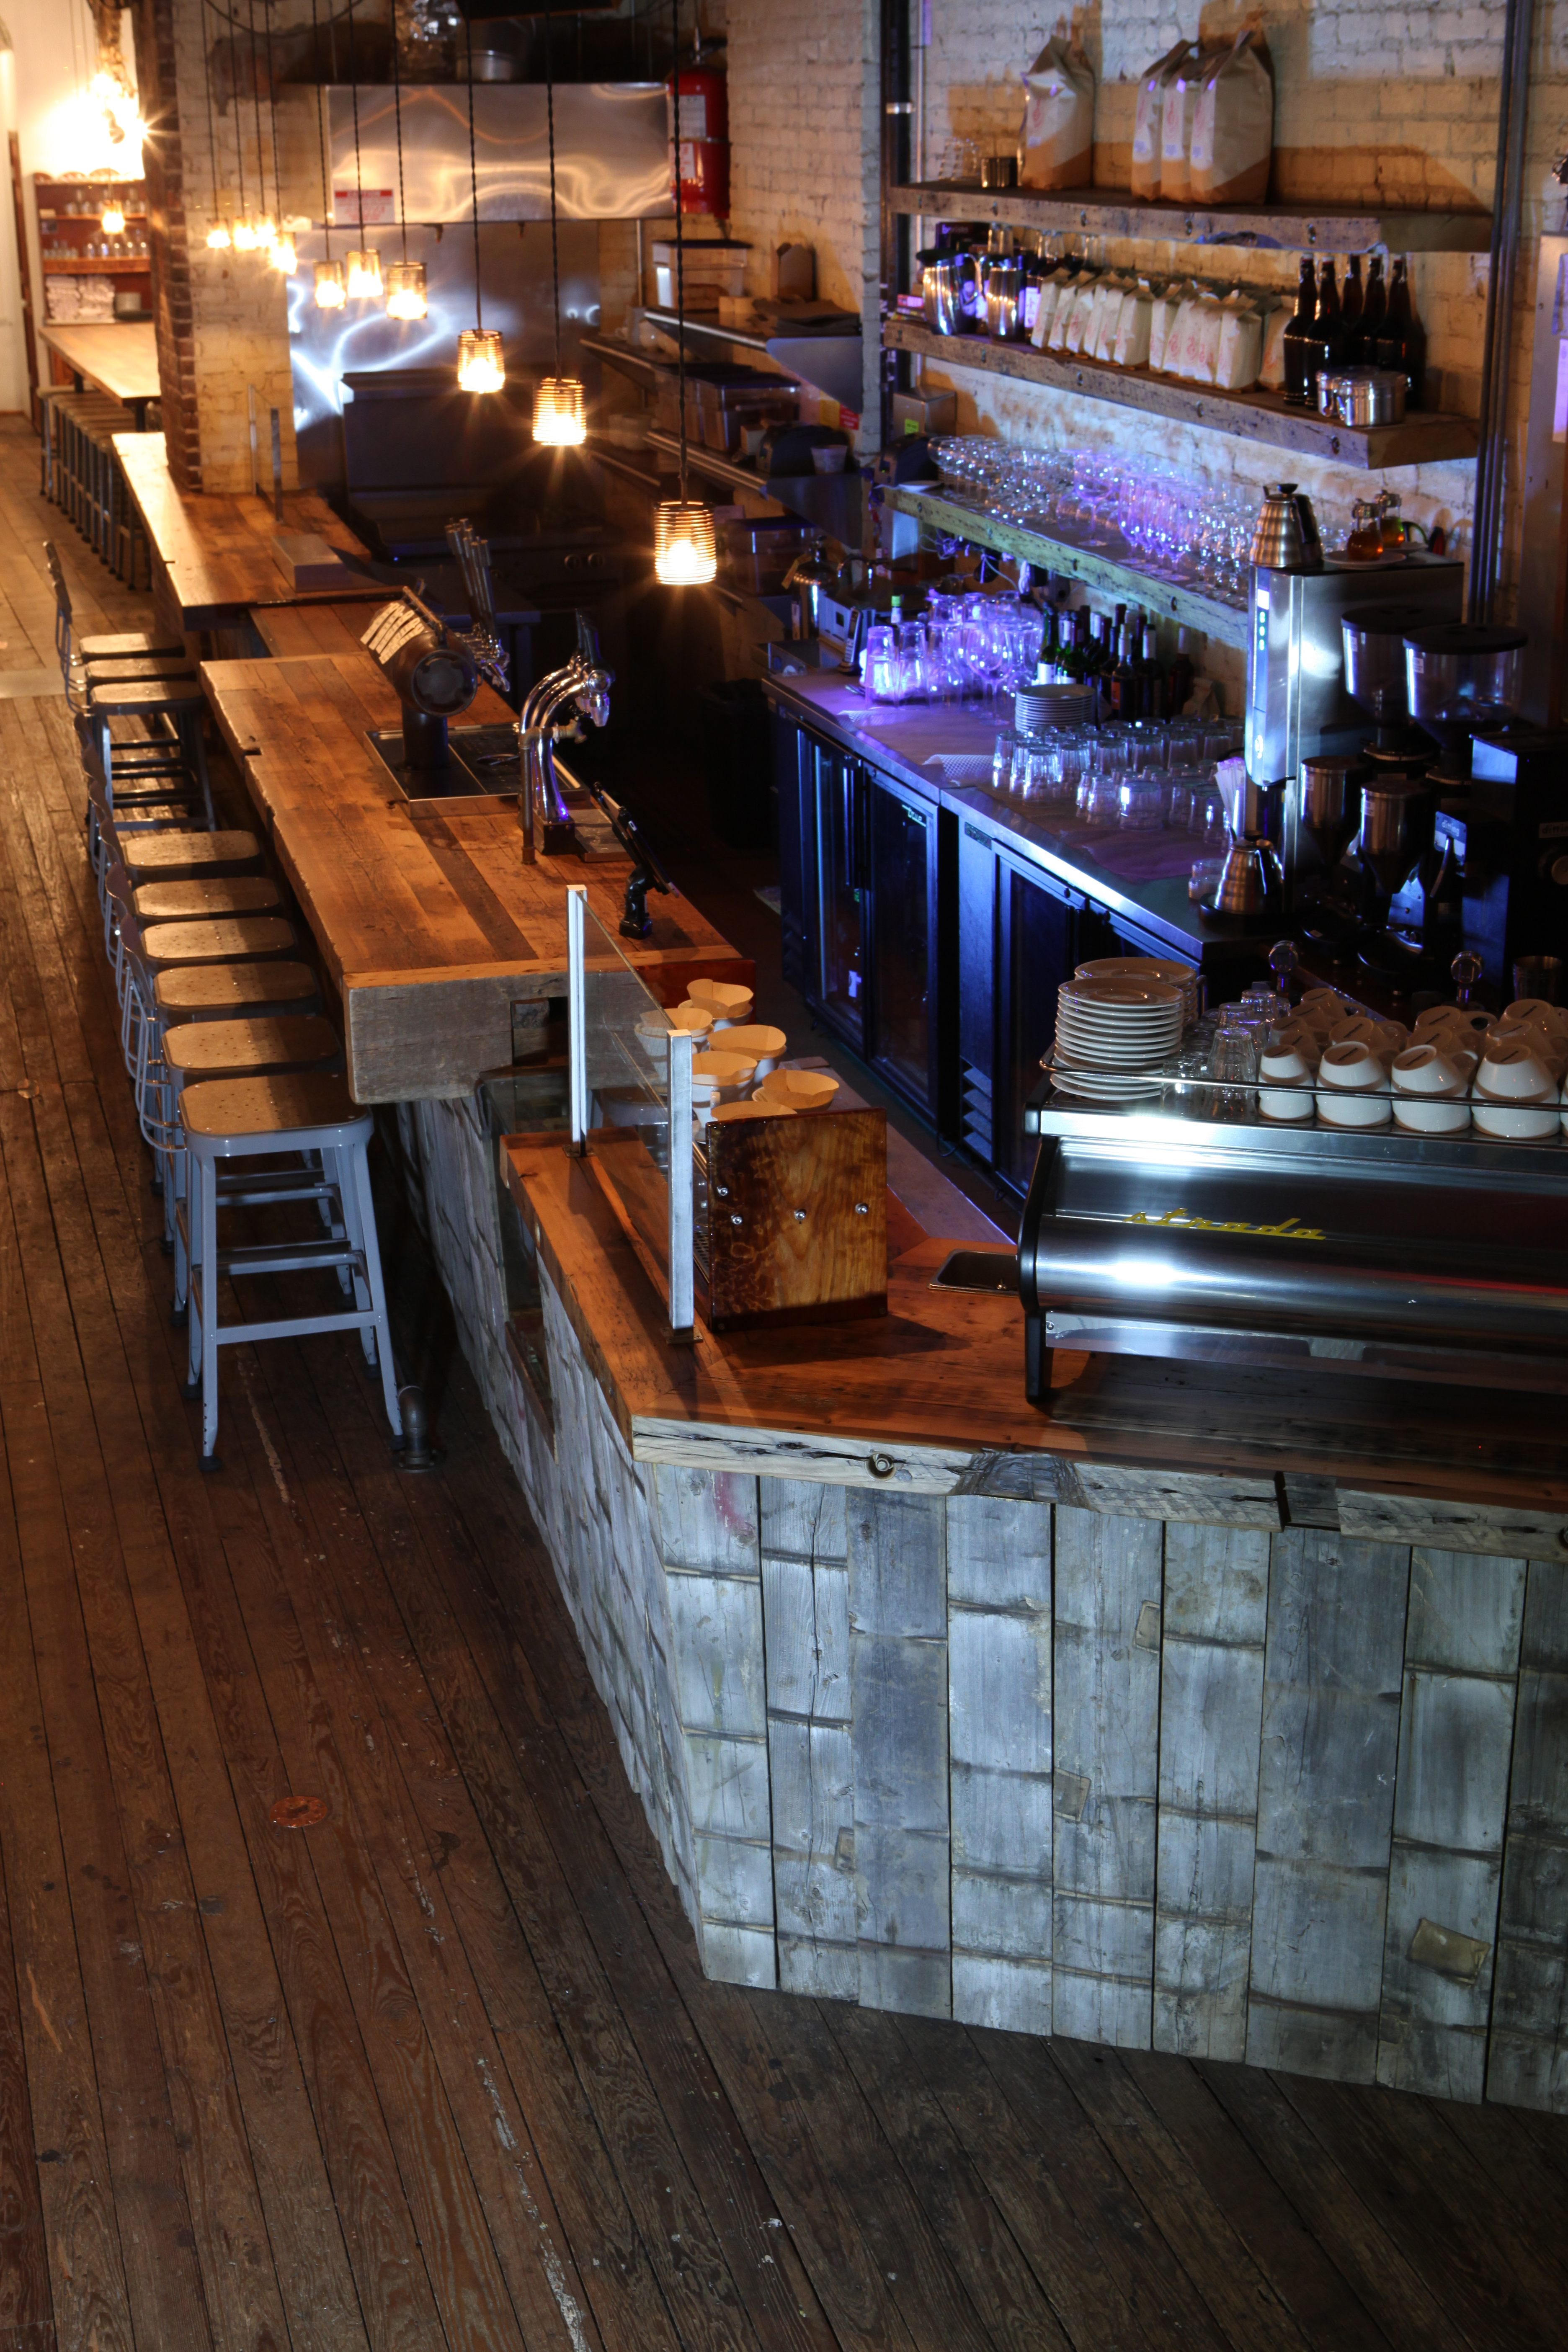 A good bar layout eases physical and financial pain